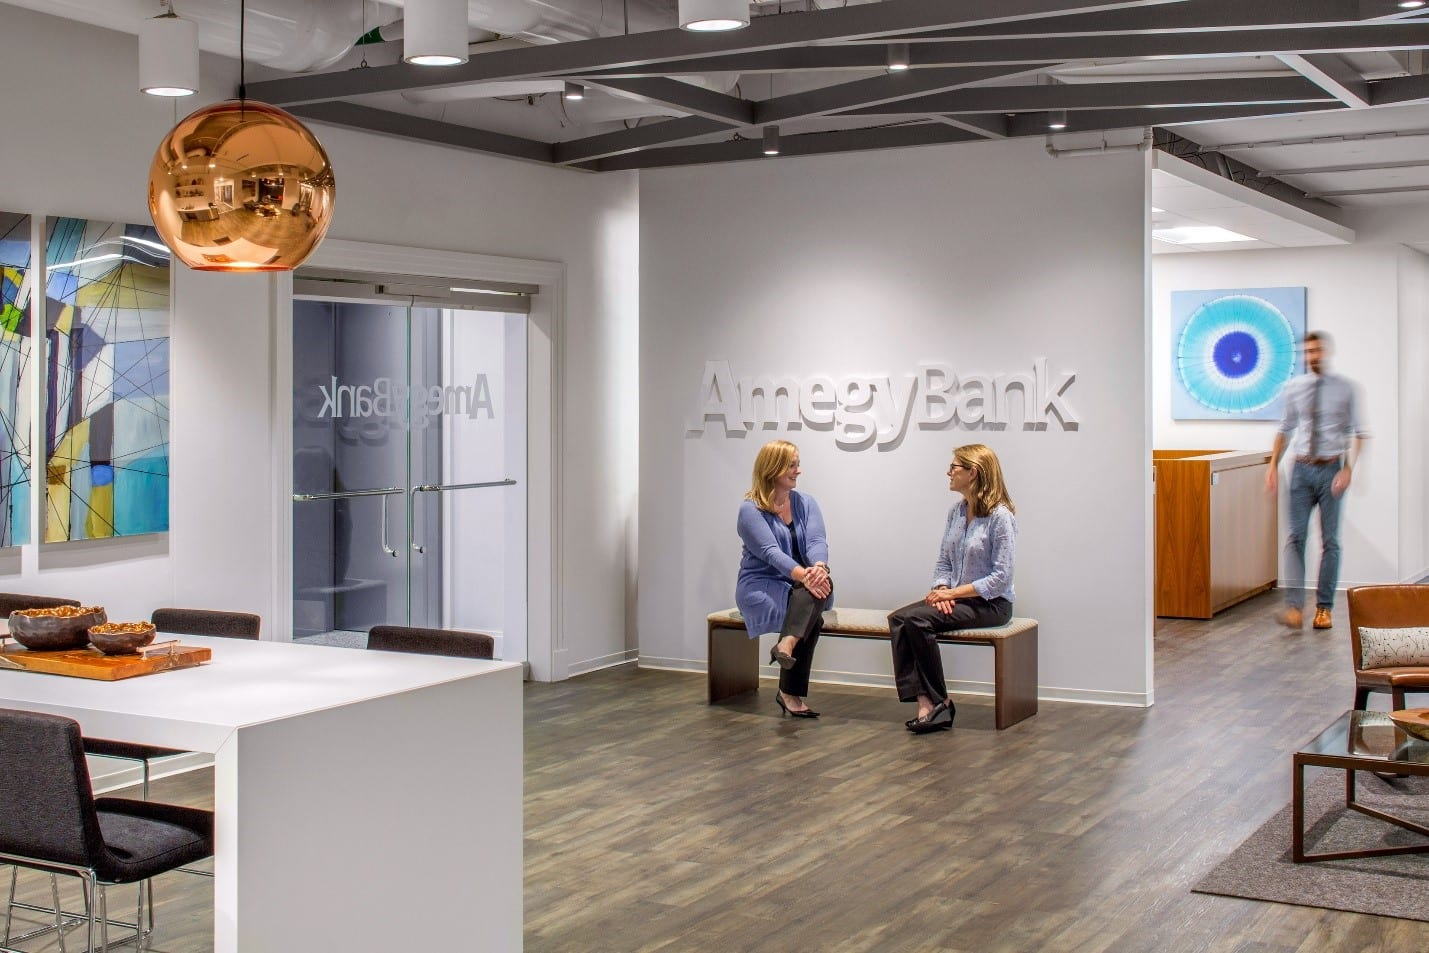 The entrance area at the Amegy Bank office in Fort Worth, Texas.